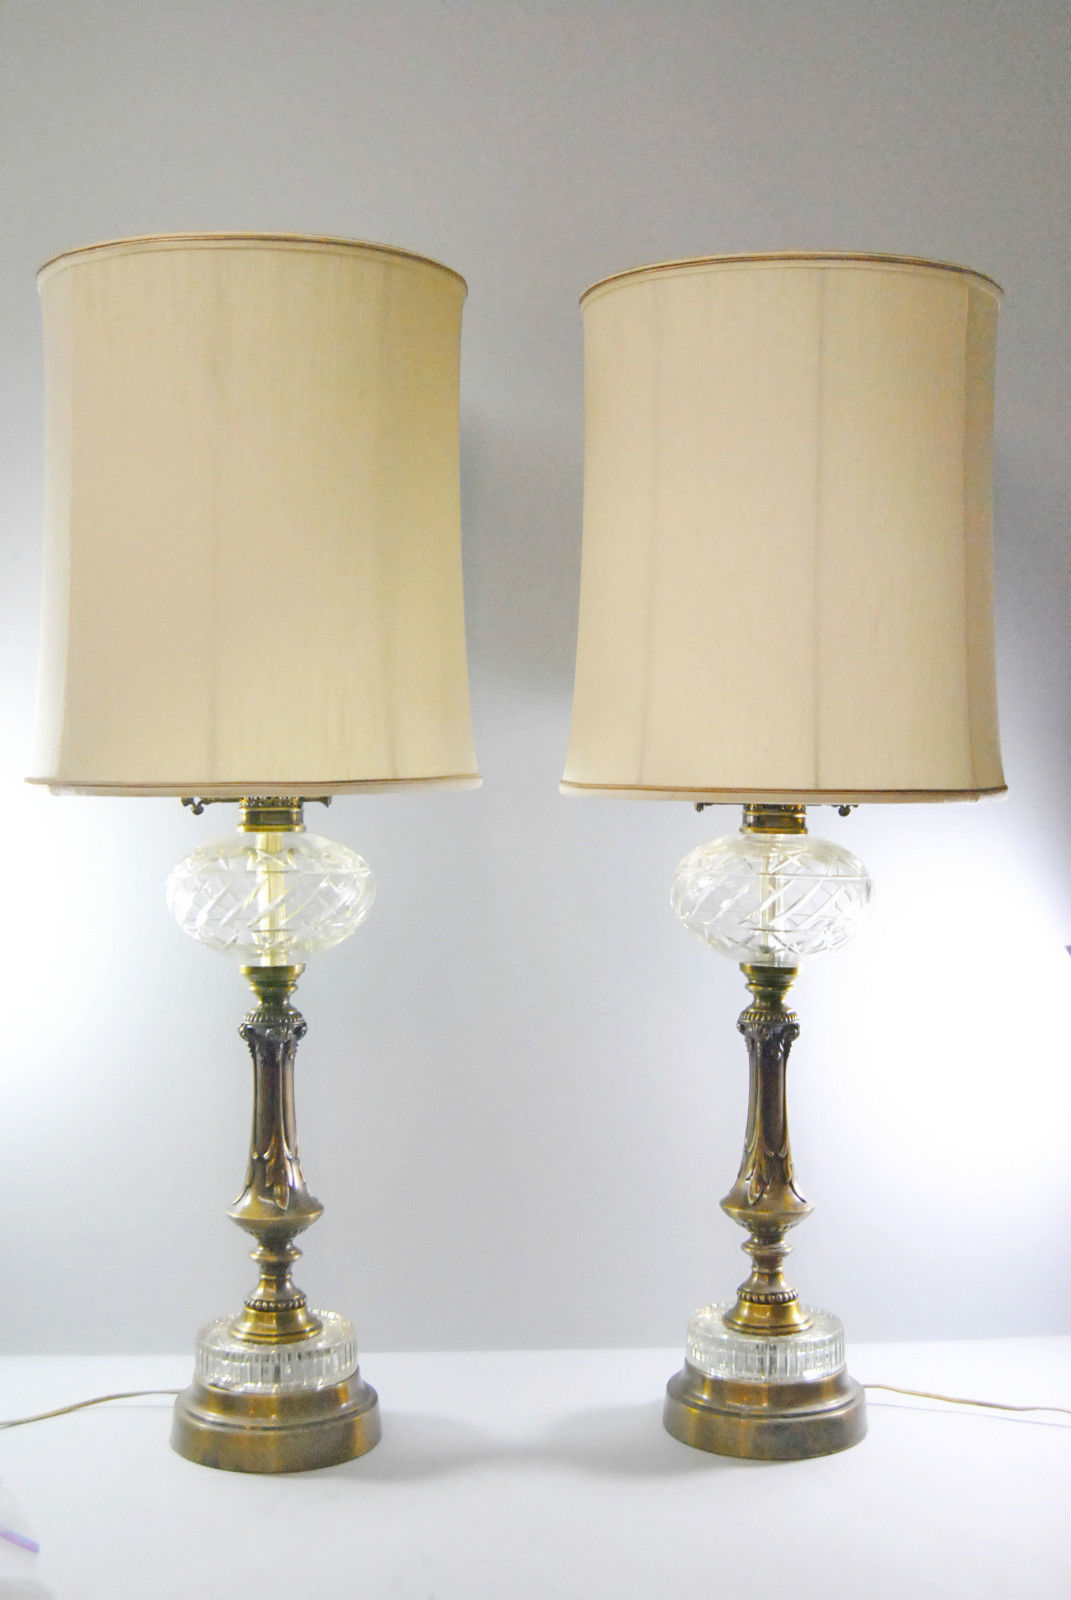 25 Vintage Table Lamps For A Retro Home Decor